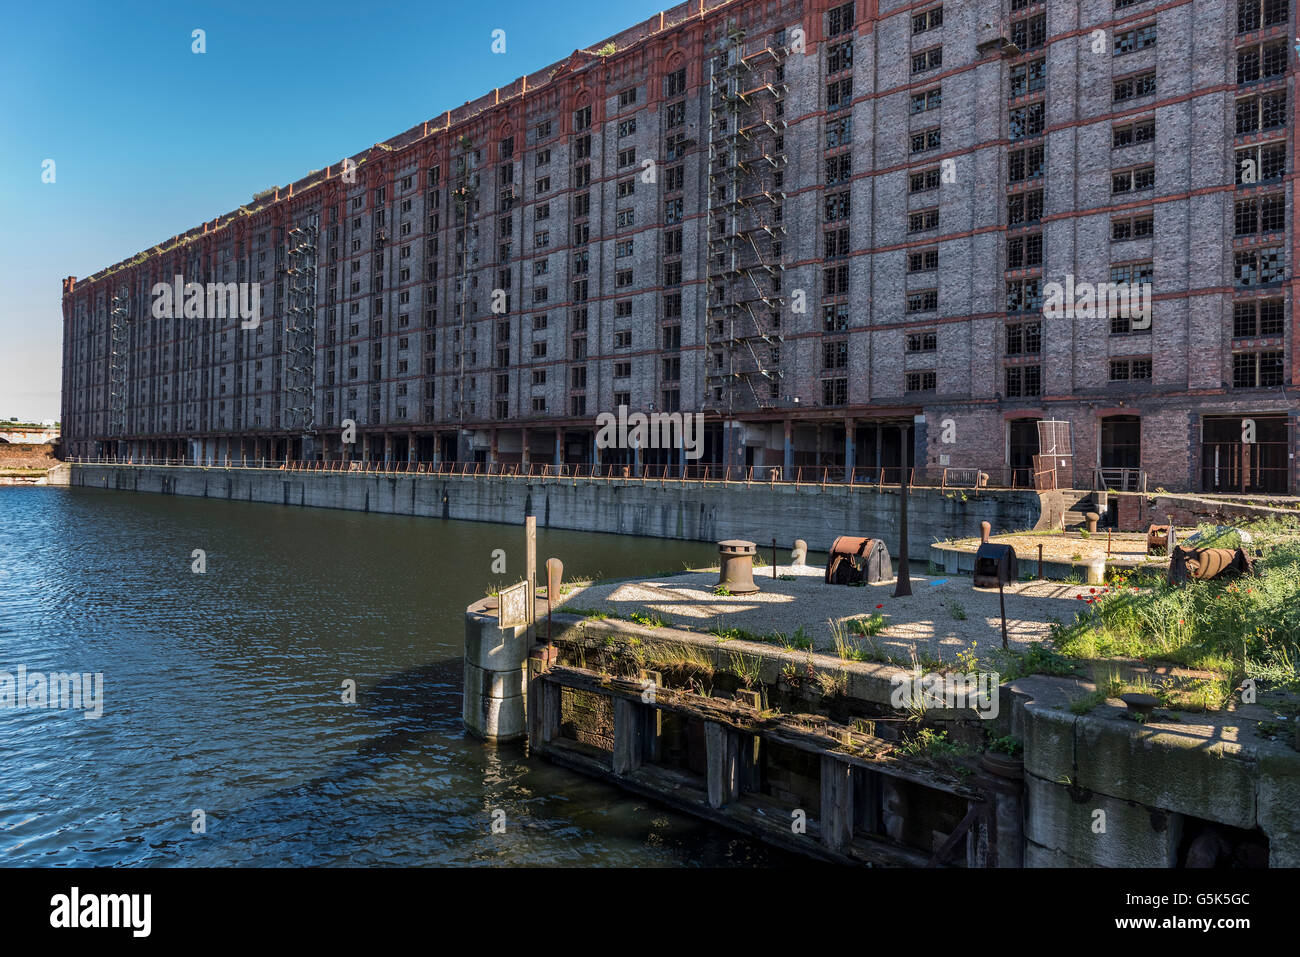 Liverpool Merseyside North West England The Stanley dock former tobacco warehouse. Used in many TV films as a location. Stock Photo